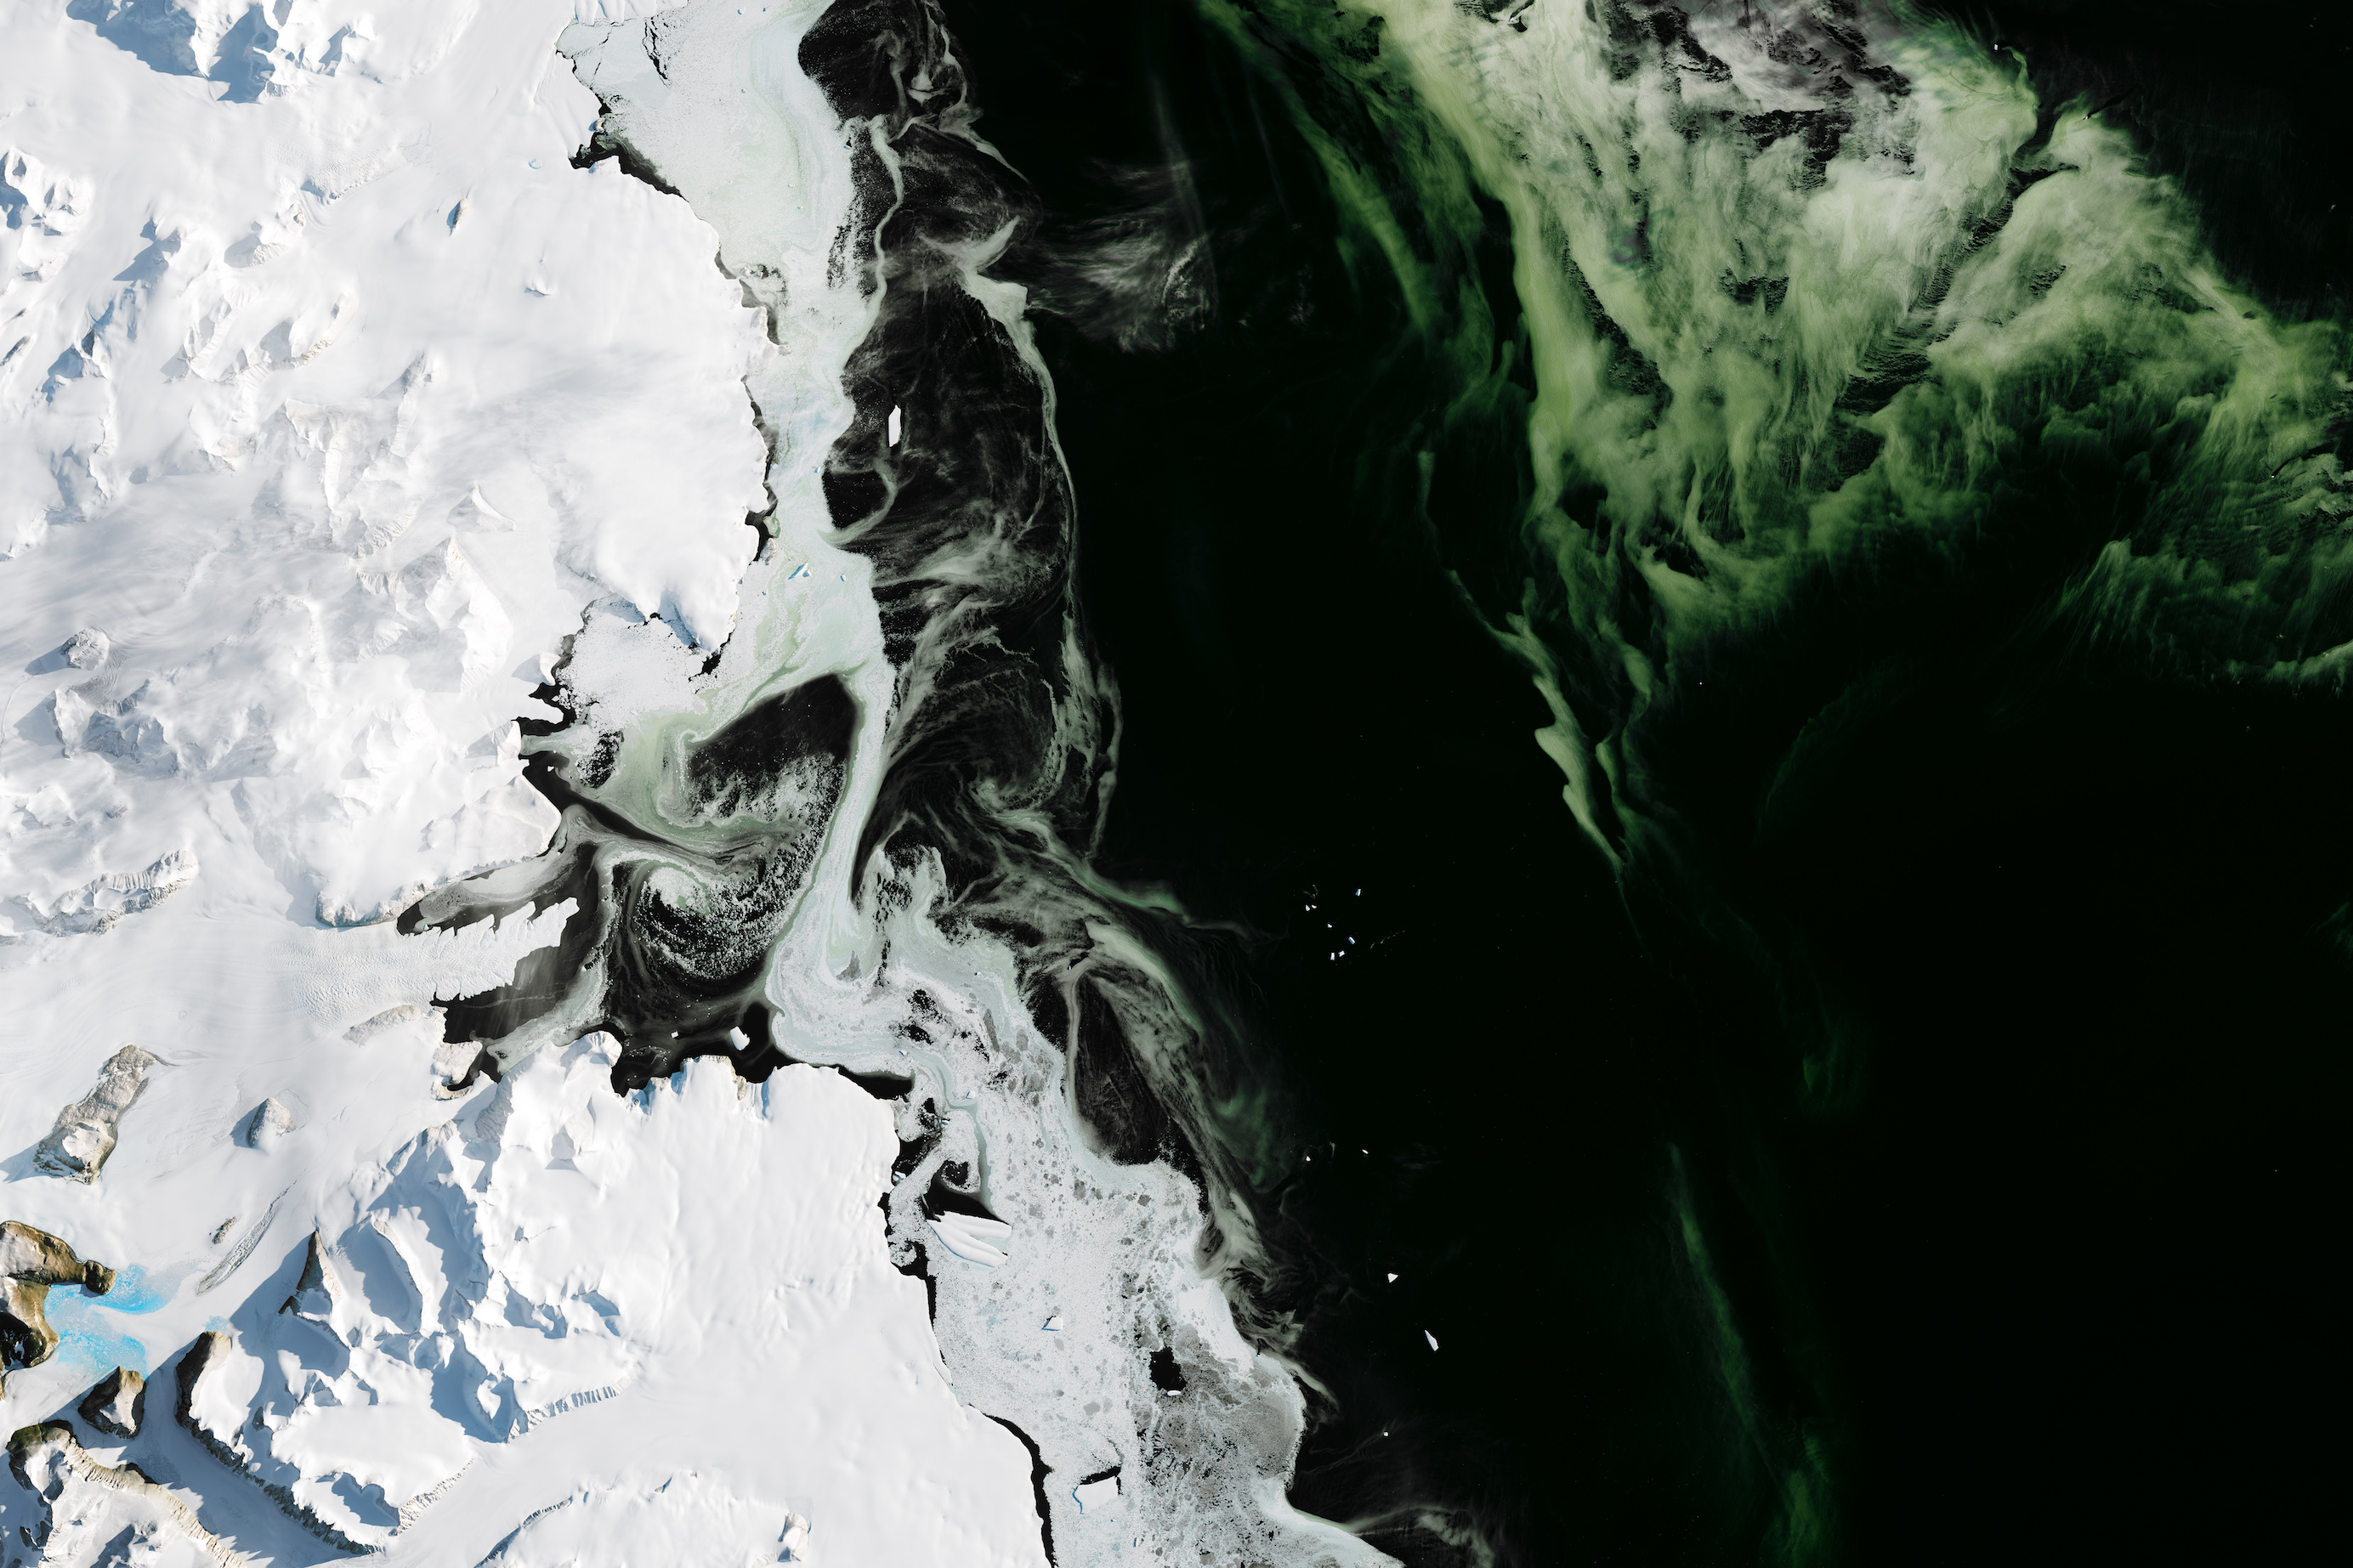 Today's Image of the Day features a beautiful emerald green effect swirling through the waters off the coast of Antarctica's Granite Harbor.